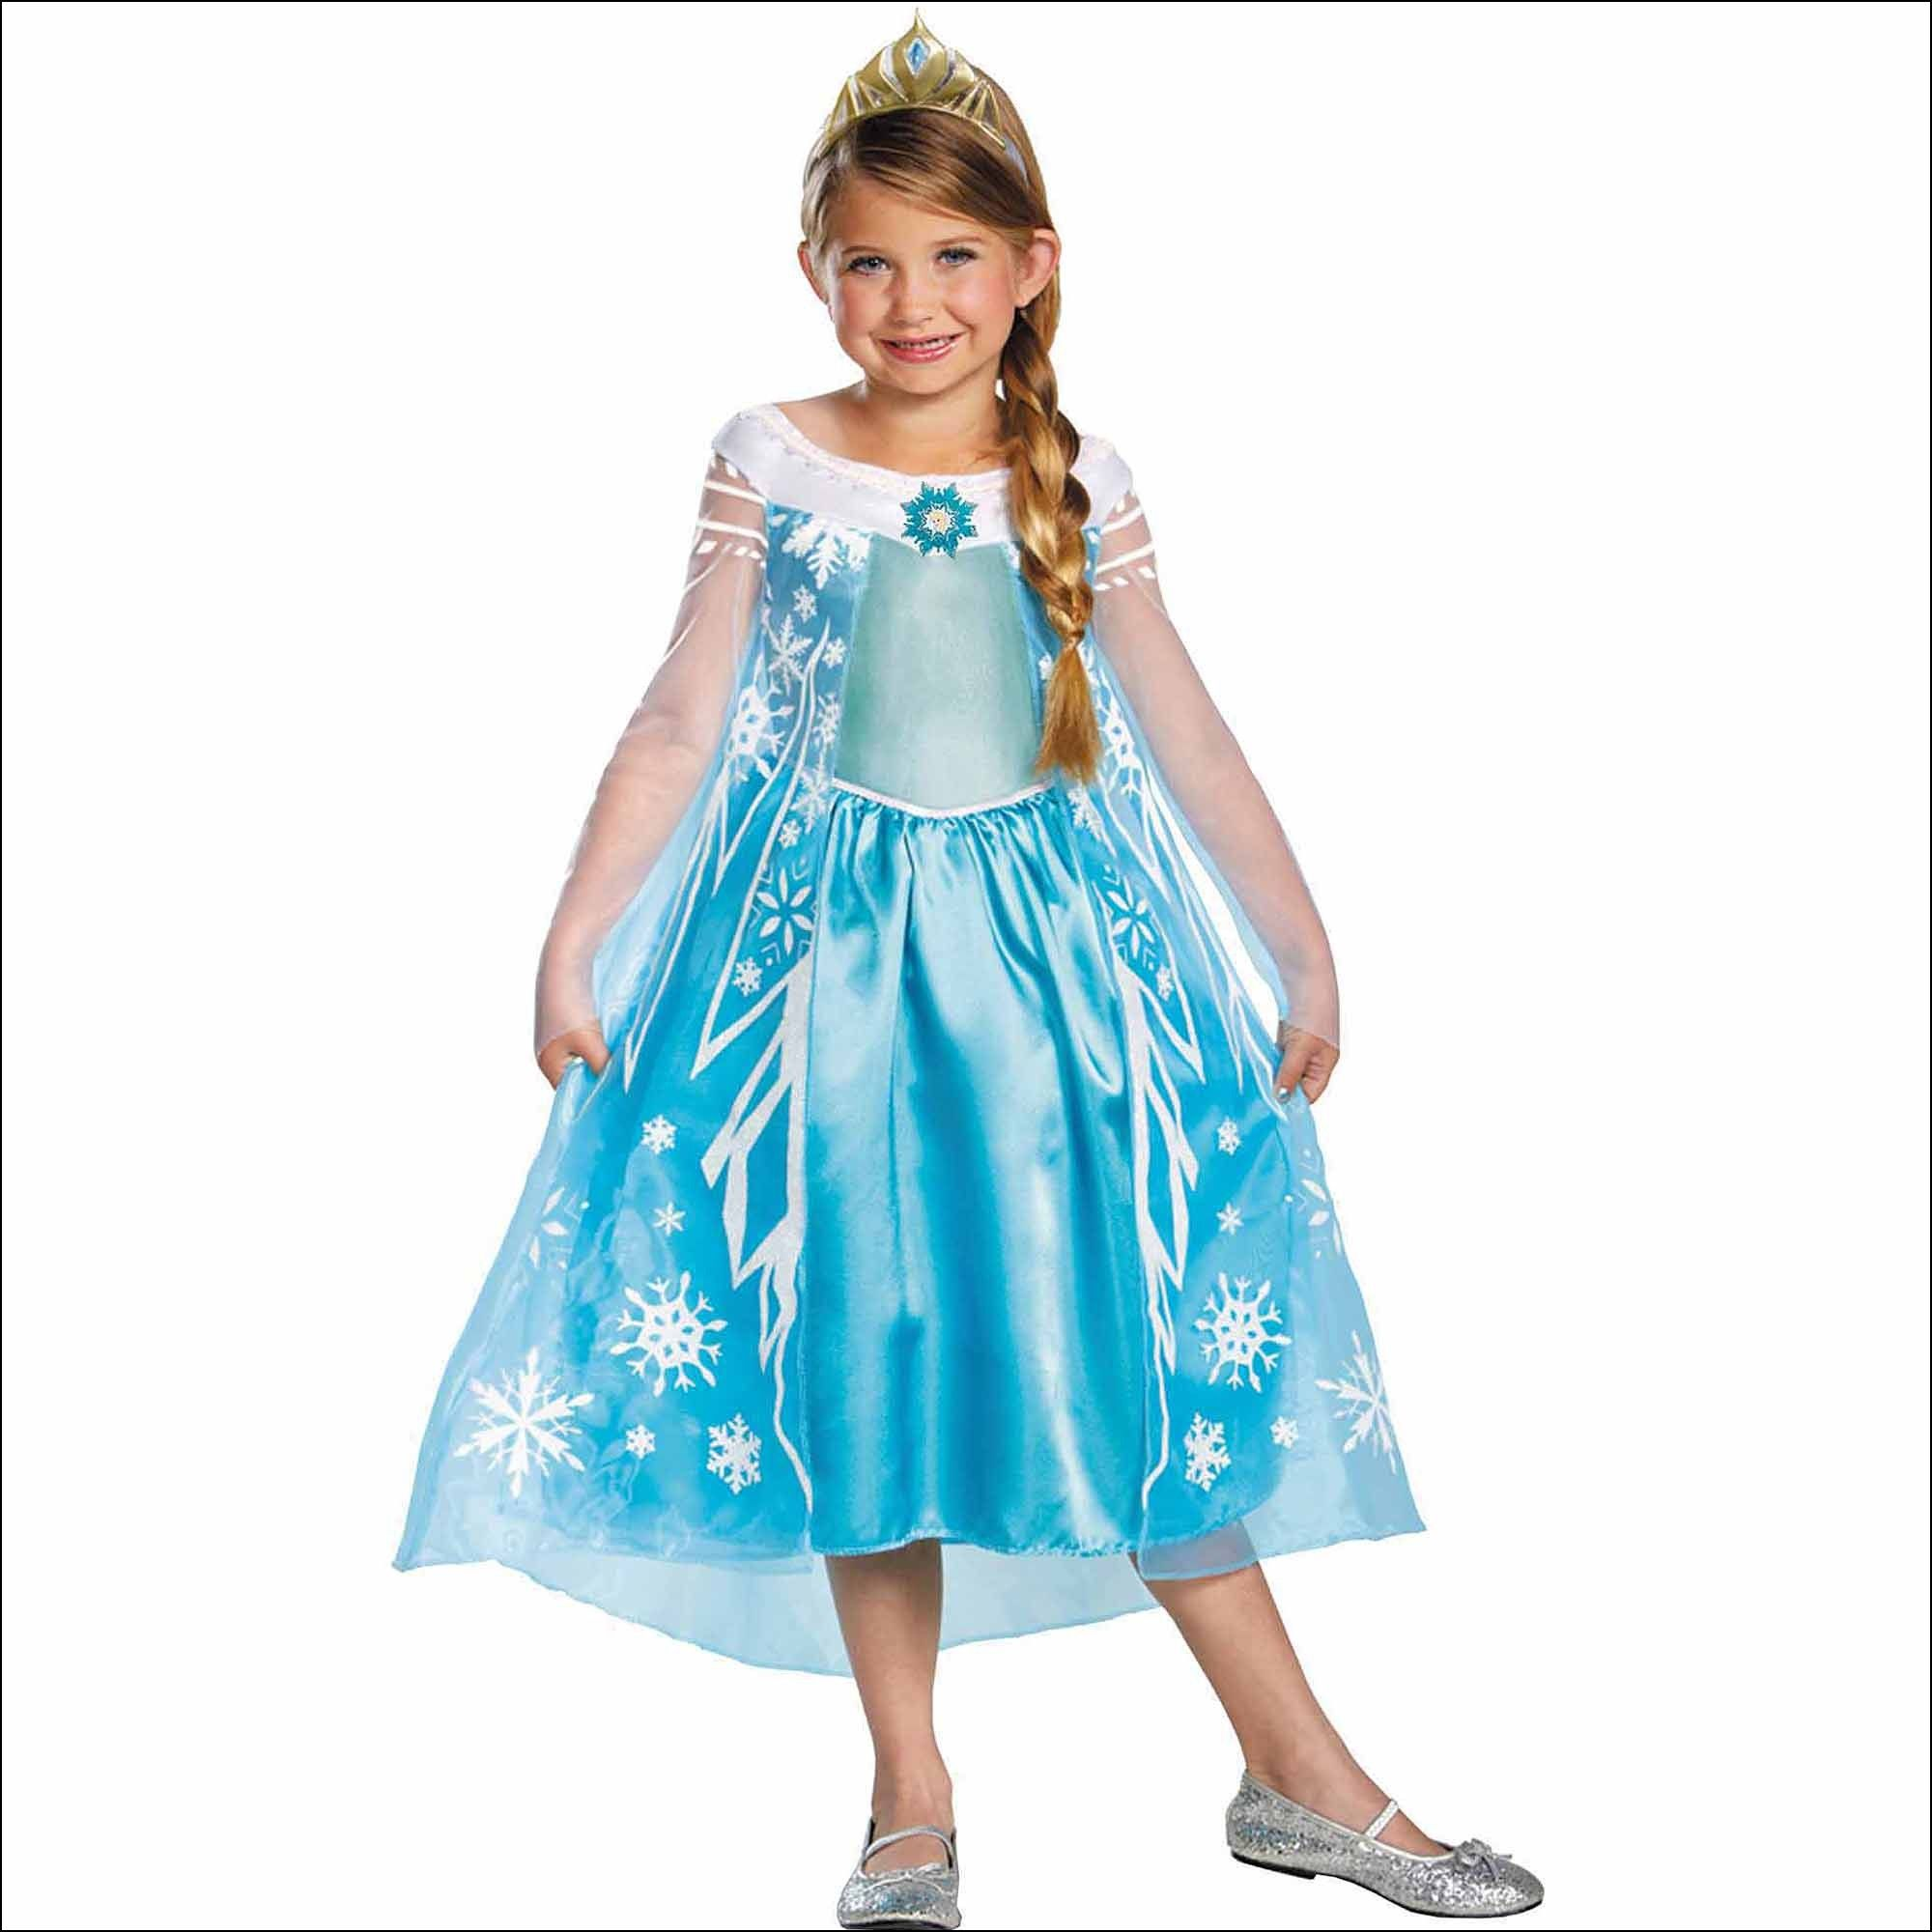 Elsa gown for kids dresses and gowns ideas pinterest elsa and